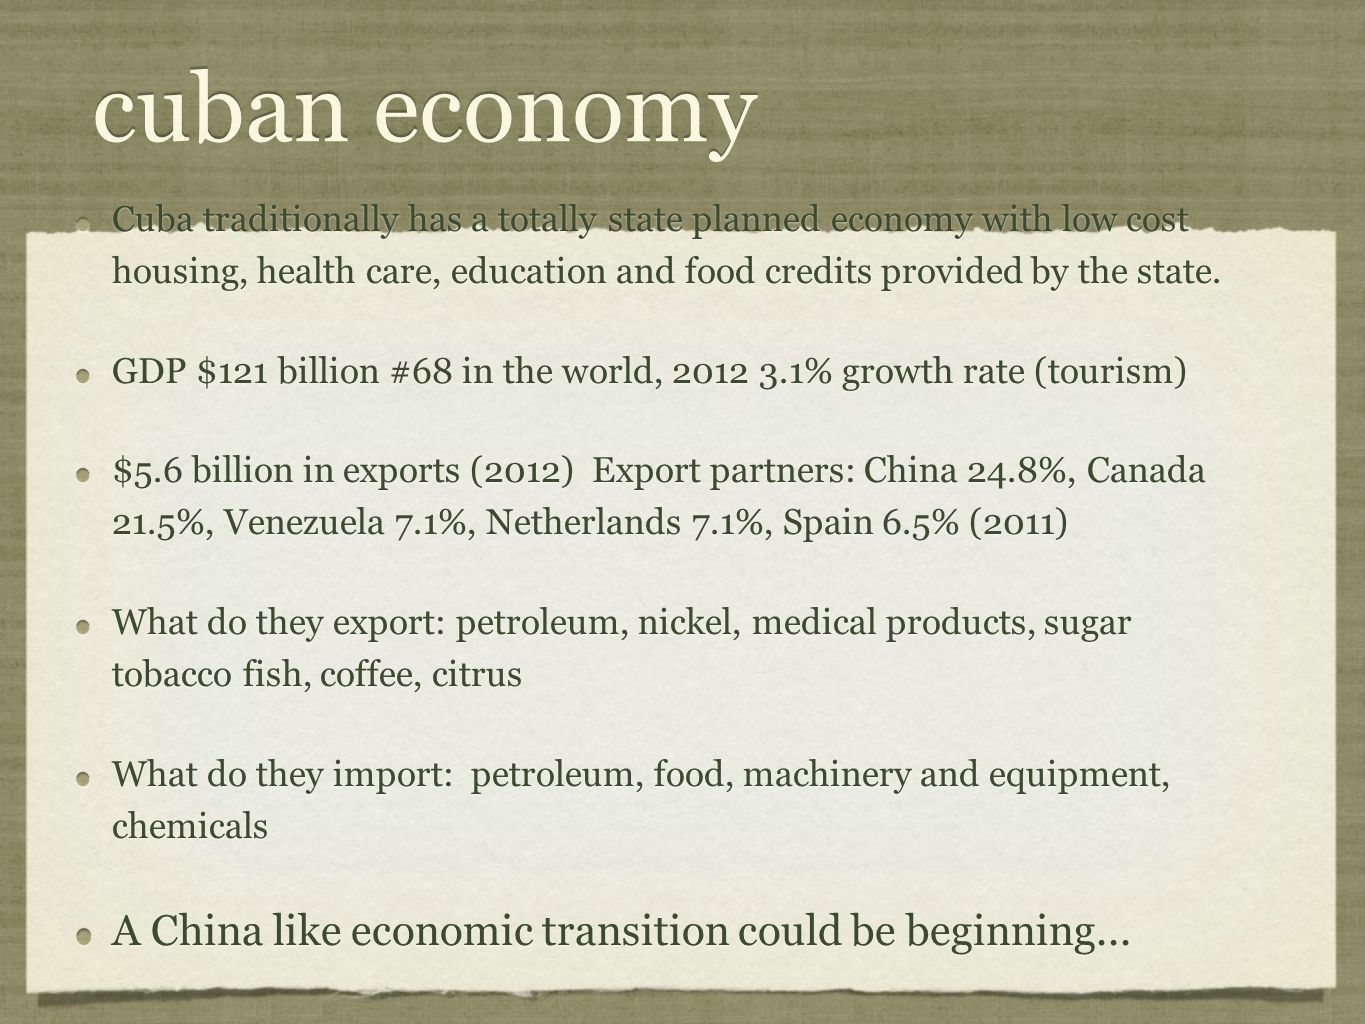 cuban economy A China like economic transition could be beginning...